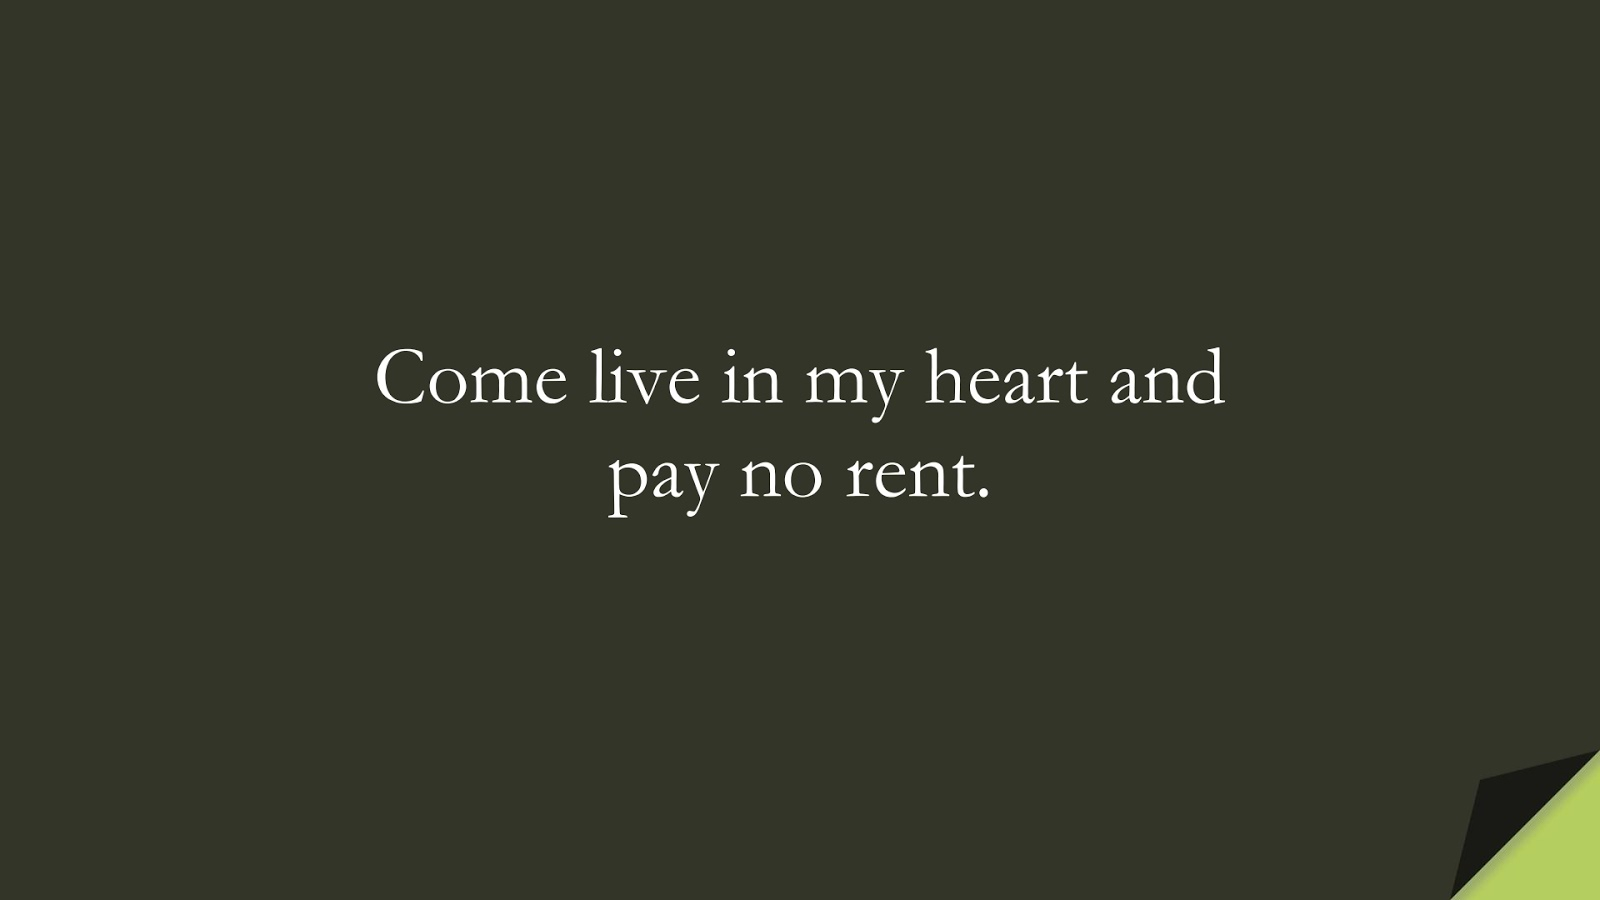 Come live in my heart and pay no rent.FALSE